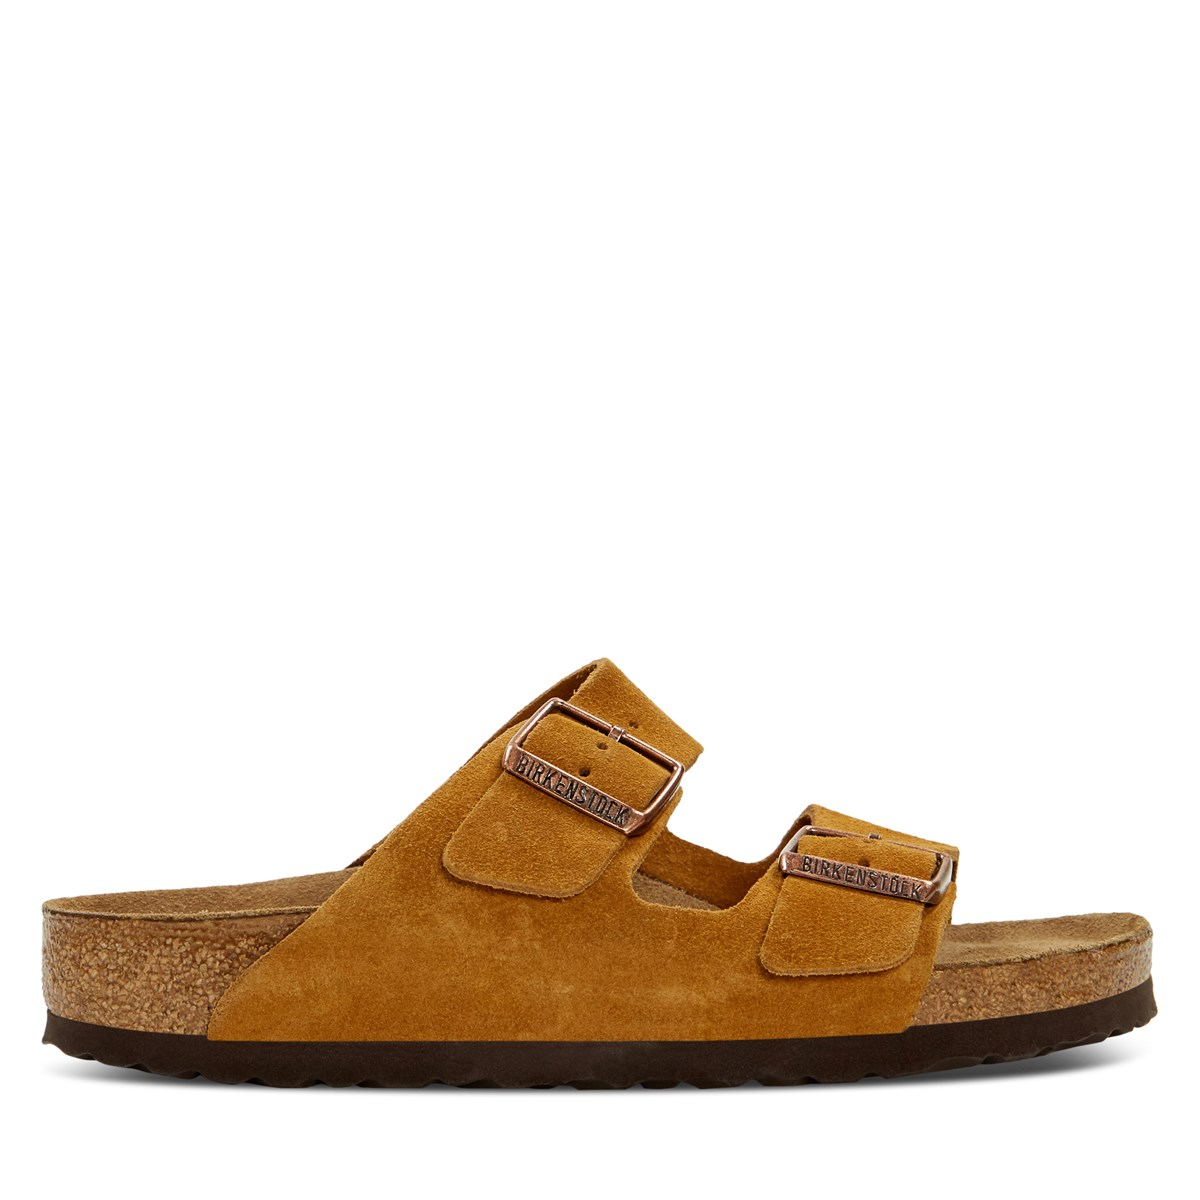 Women's Arizona Soft Sandals in Mink